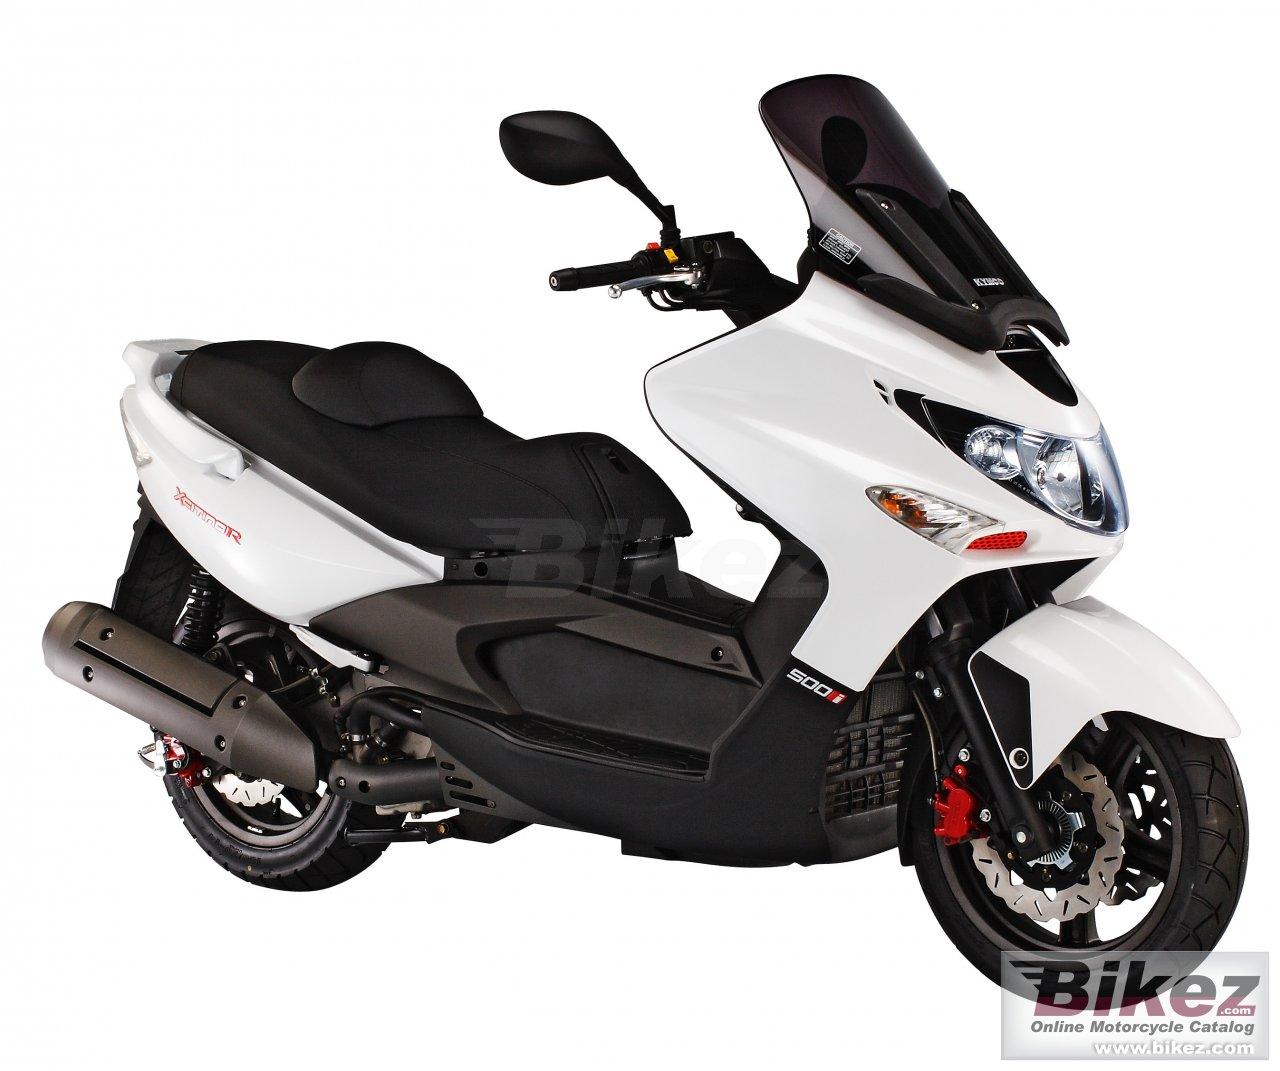 Big Kymco xciting r afi 500 picture and wallpaper from Bikez.com